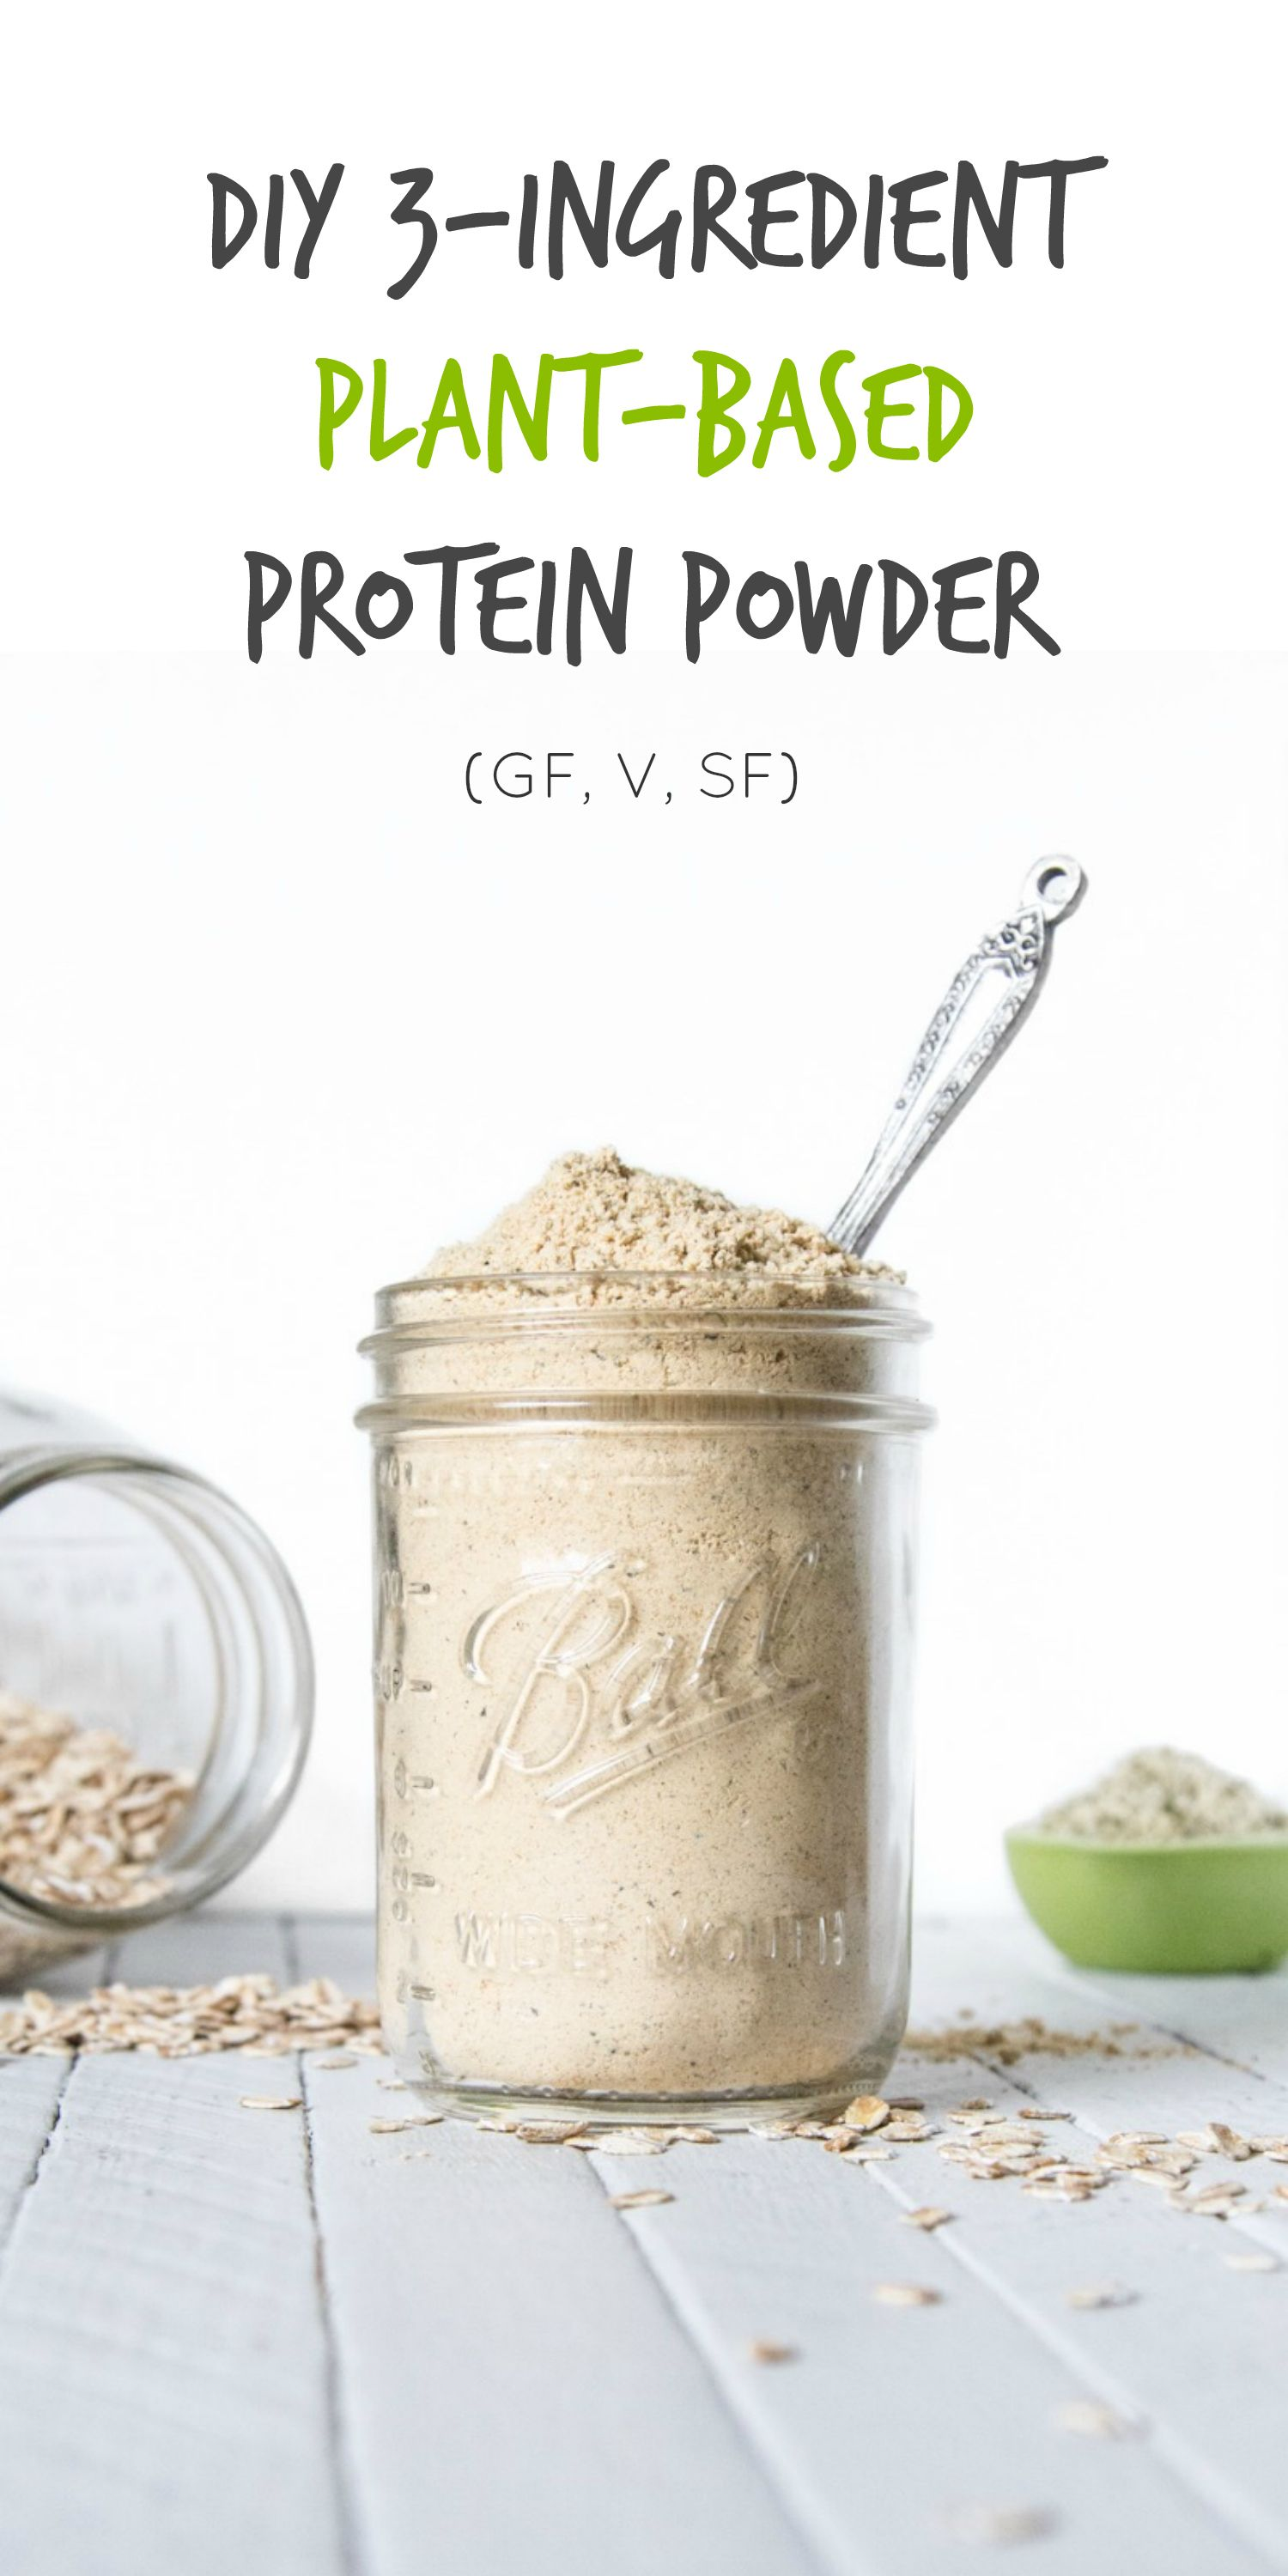 DIY 3 Ingredient Plant-Based Protein Powder - The Plant Philosophy